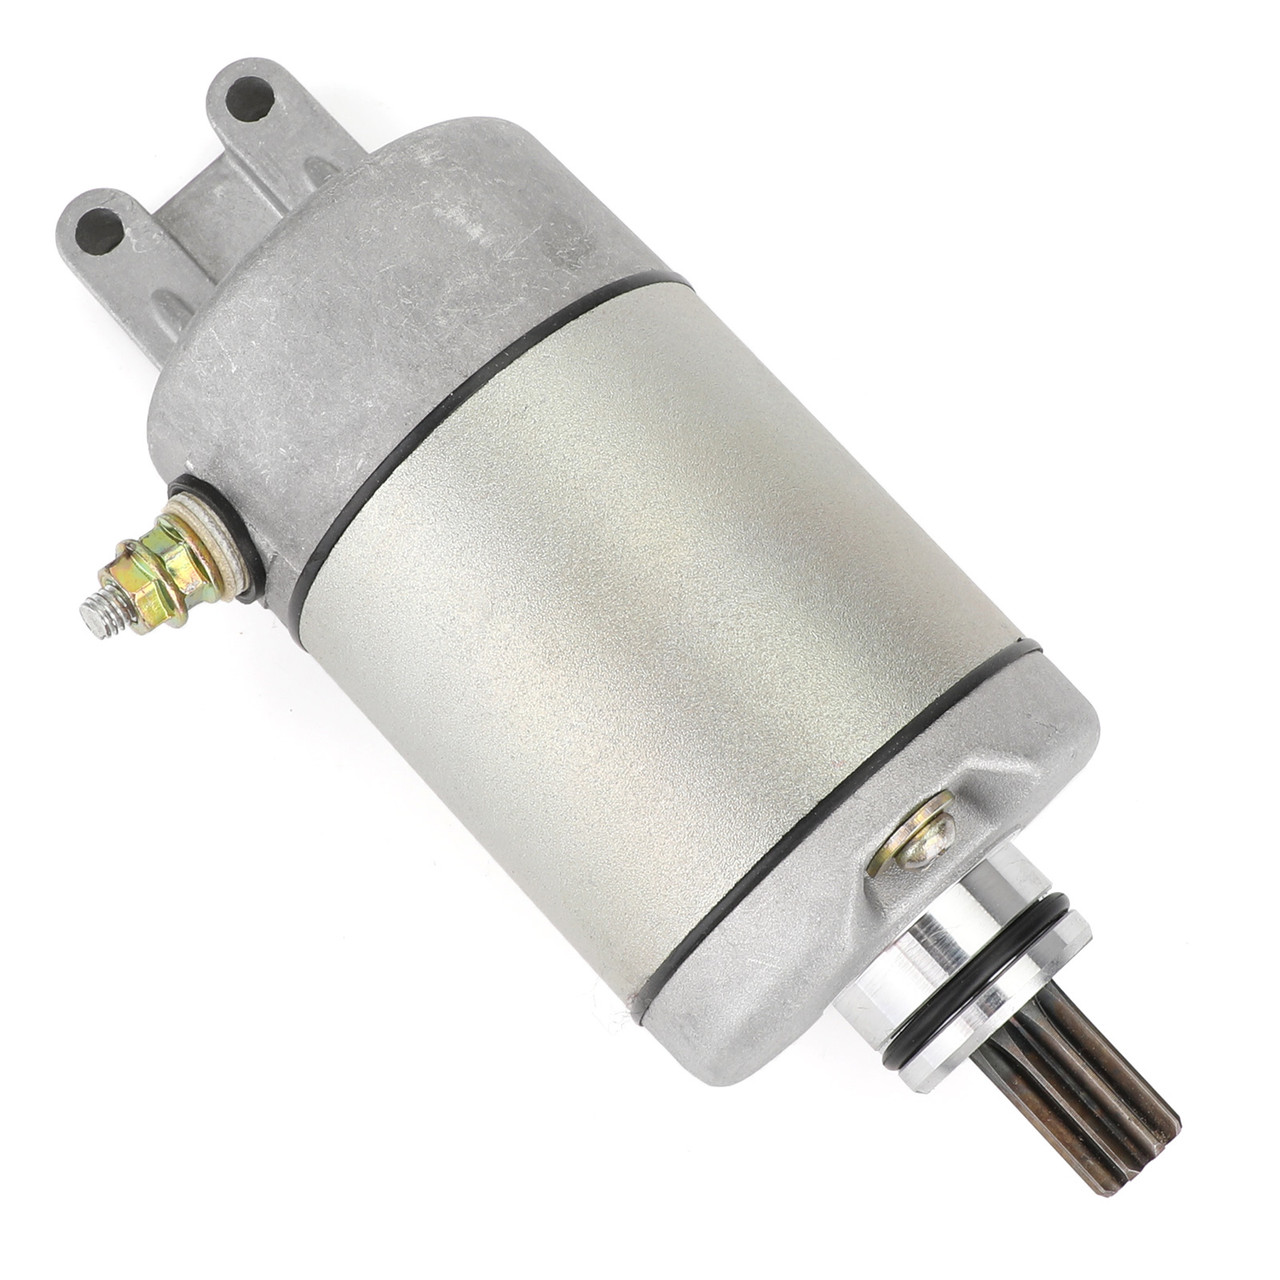 STD Starter For Bombardier Can-Am Outlander 330 XT 2X4 4X4 2004 2005